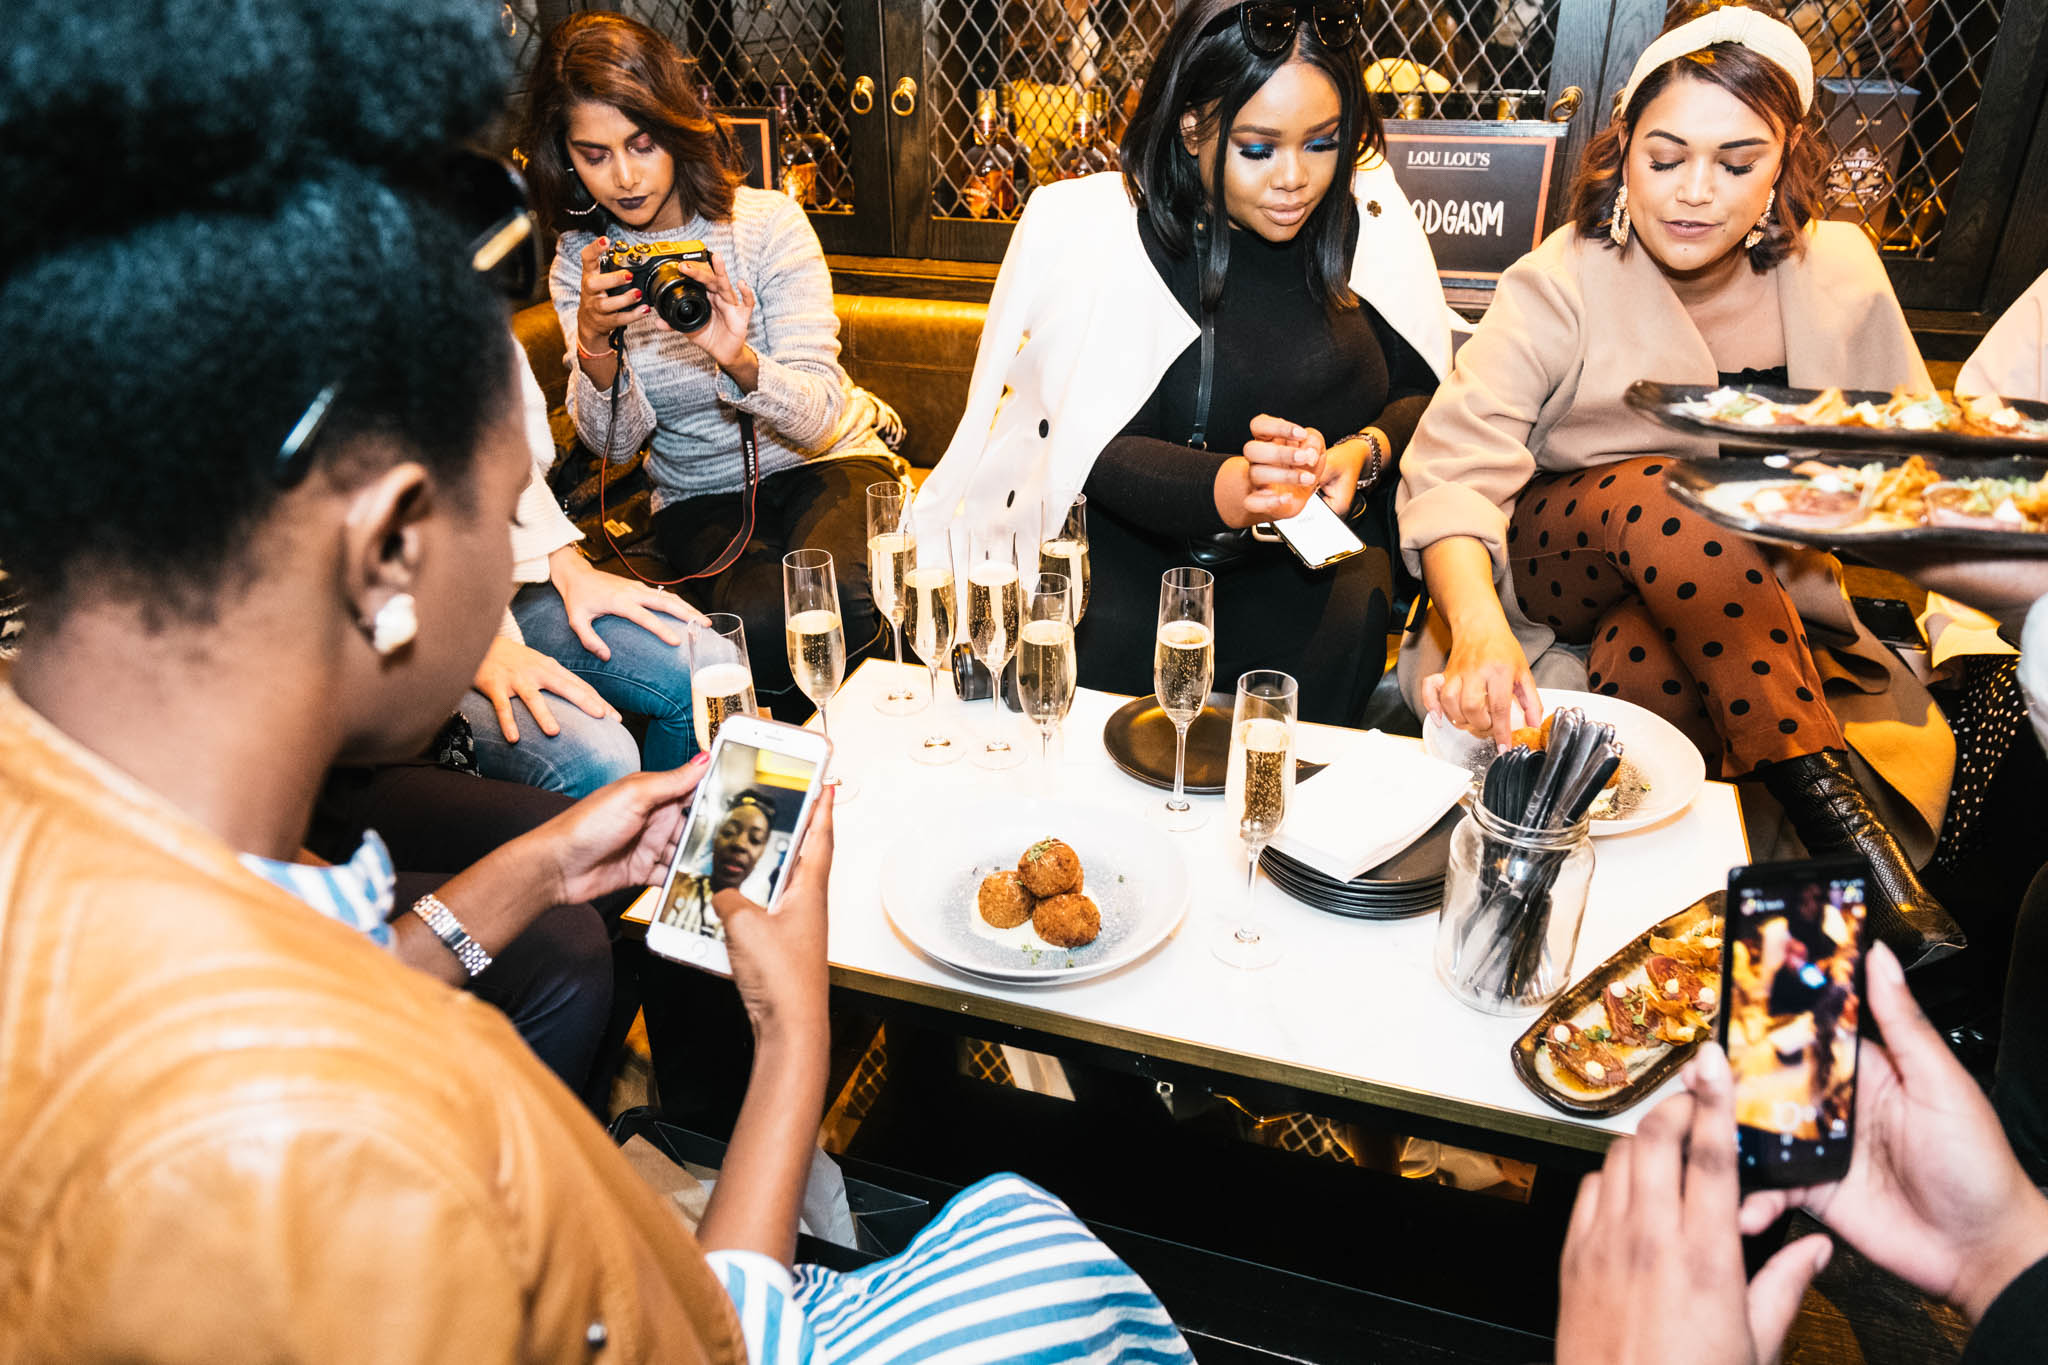 Influencers enjoy bubbly and food at LouLou's after a long day of media activities